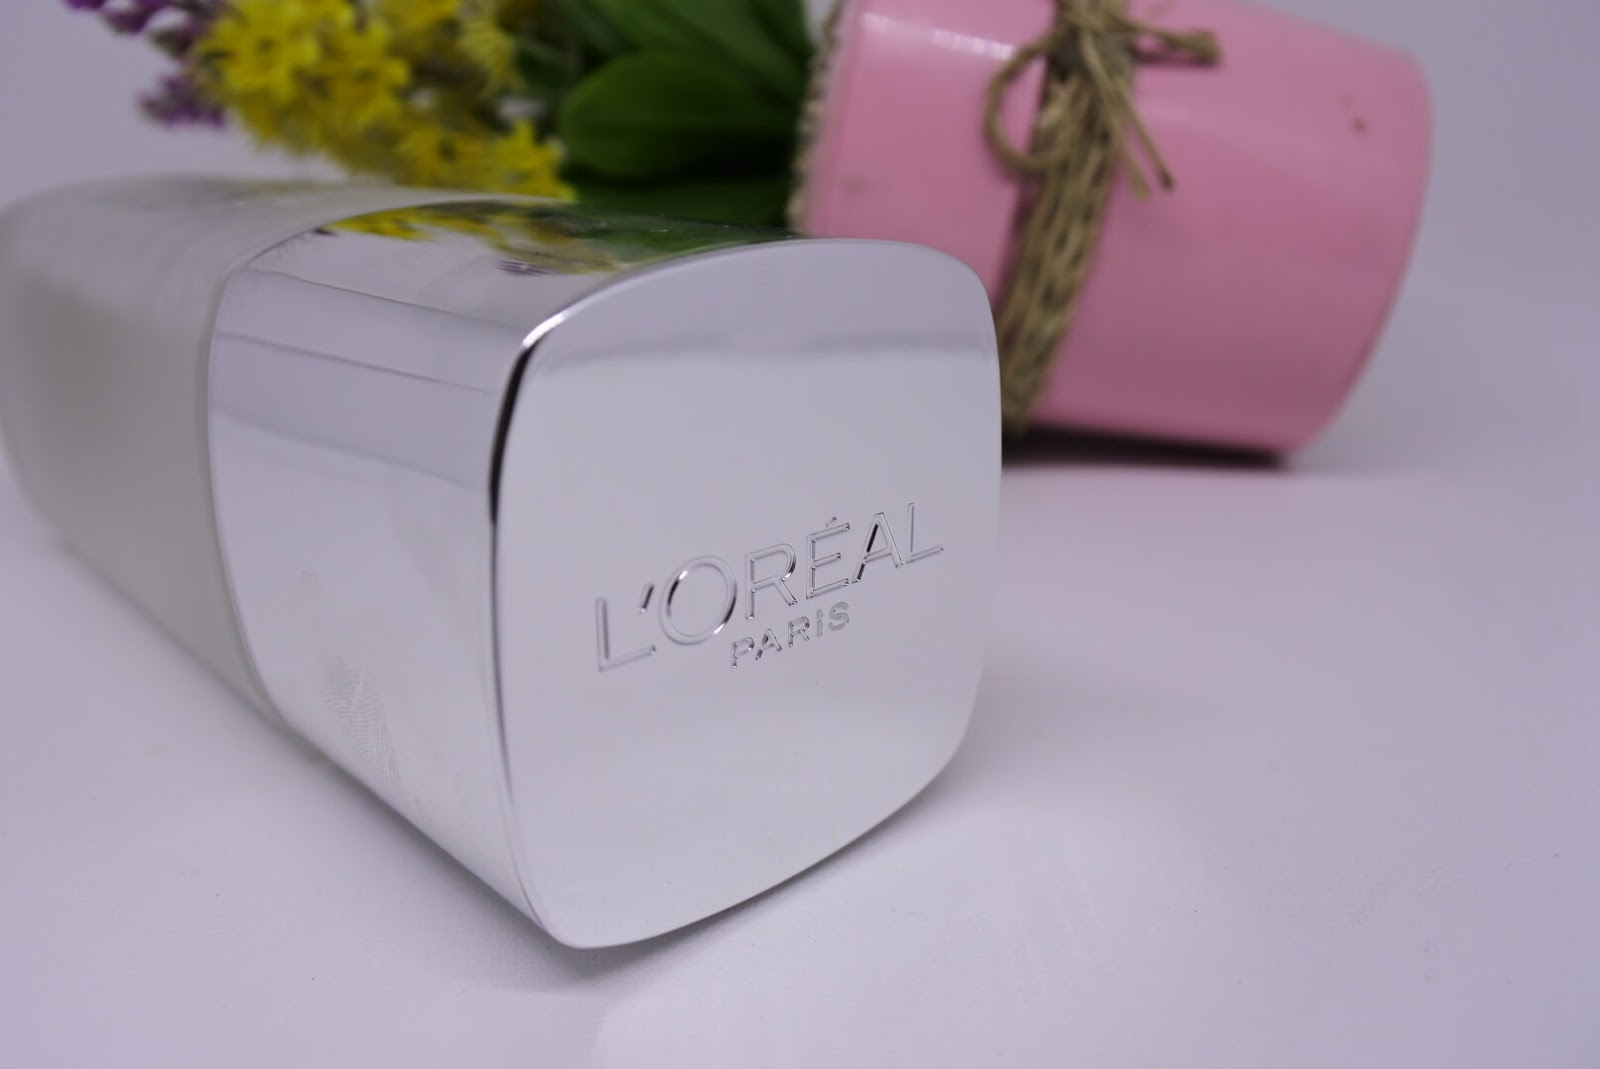 Review L'oreal Paris Revitalift Crystal Micro Essence